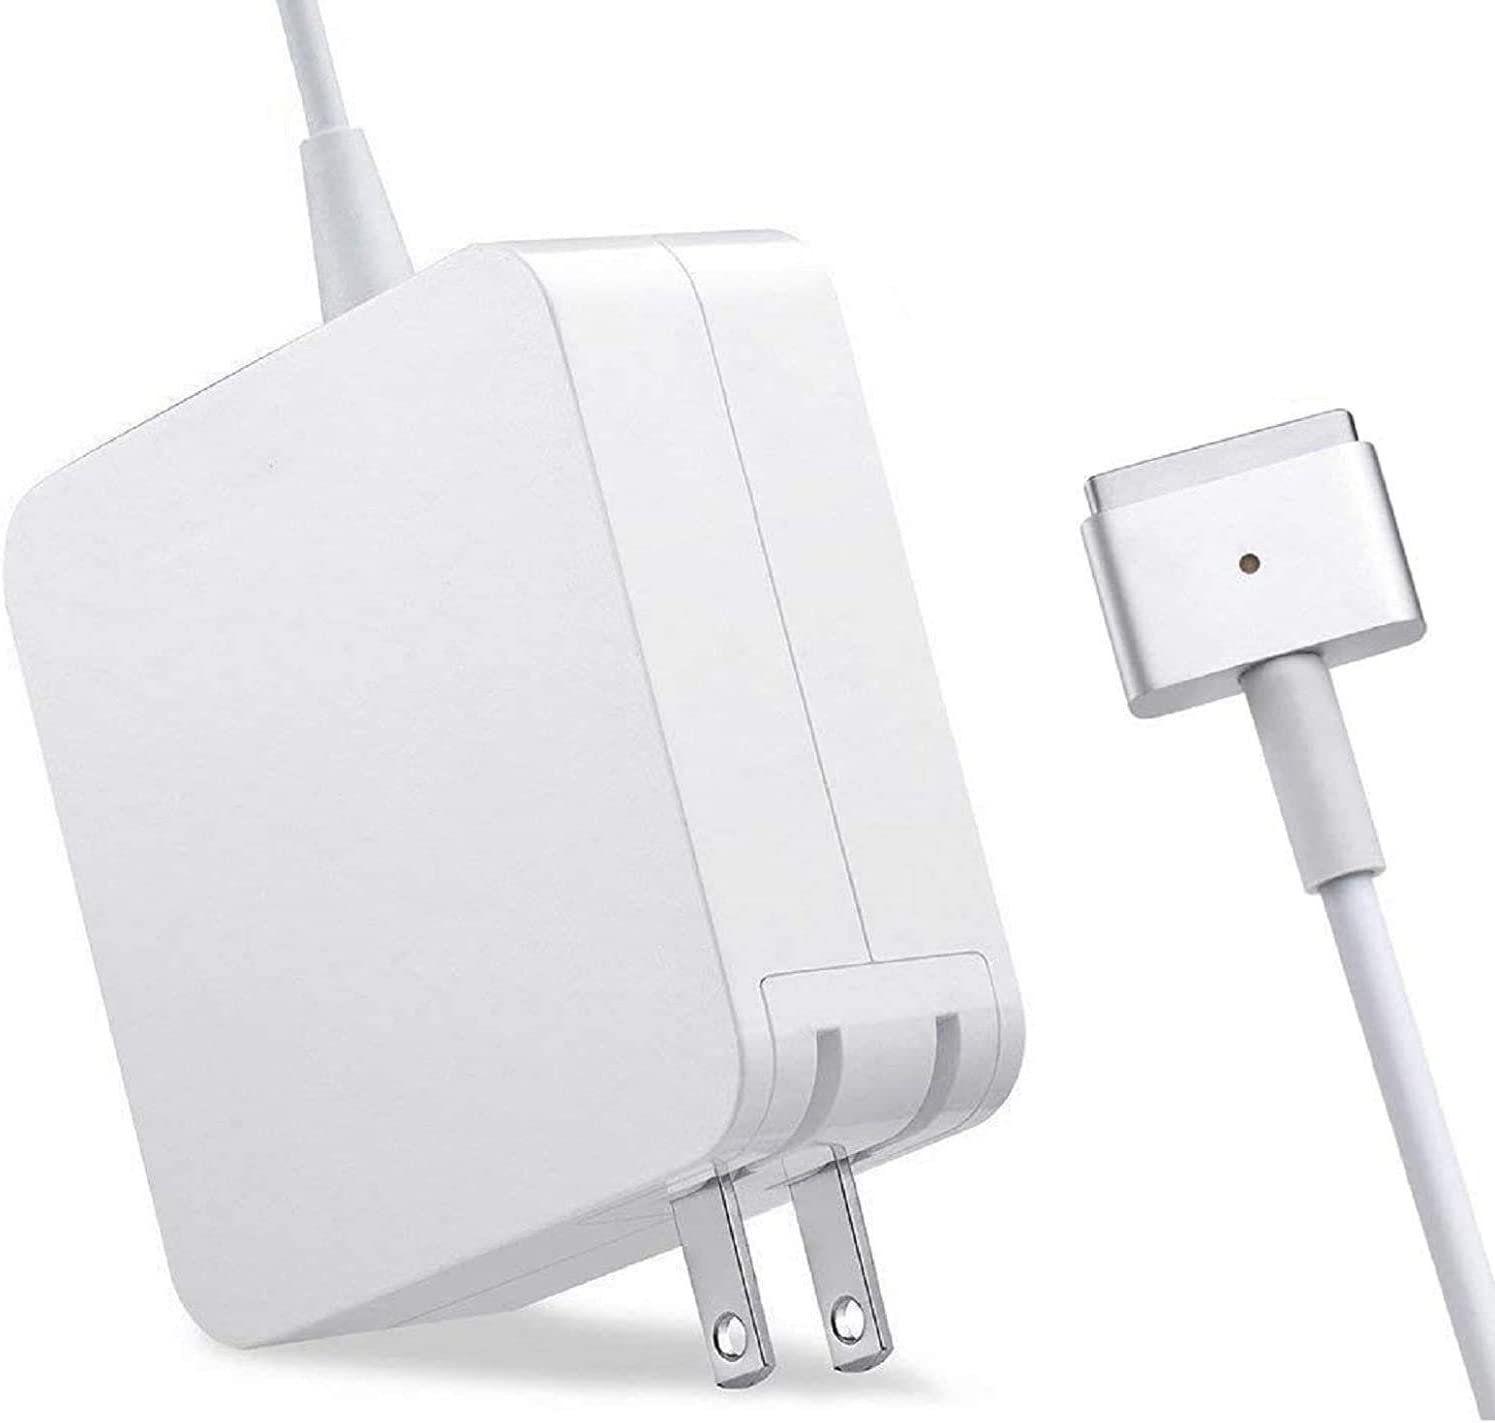 Mac Book Pro Charger, AC 60W 2 T-tip Power Adapter Charger Compatible with MacBook Charger/Mac Book Air( After Late 2012)